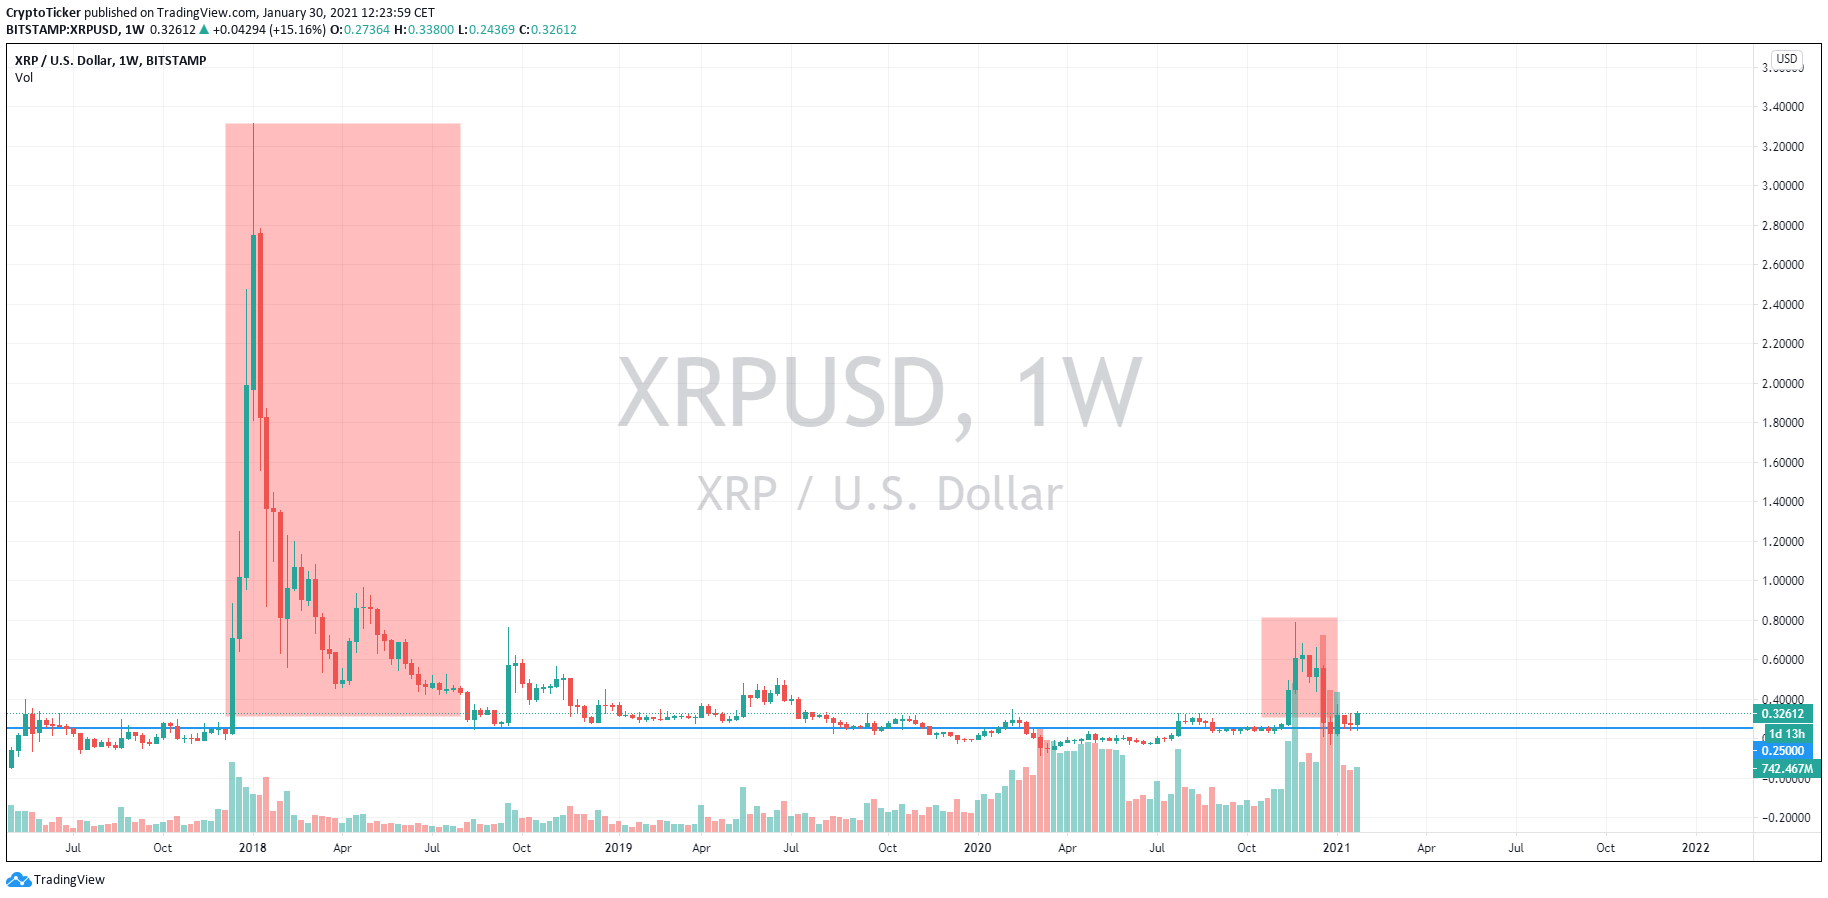 XRP/USD 1-week chart showing the average XRP price of USD 25 cents over 4 years